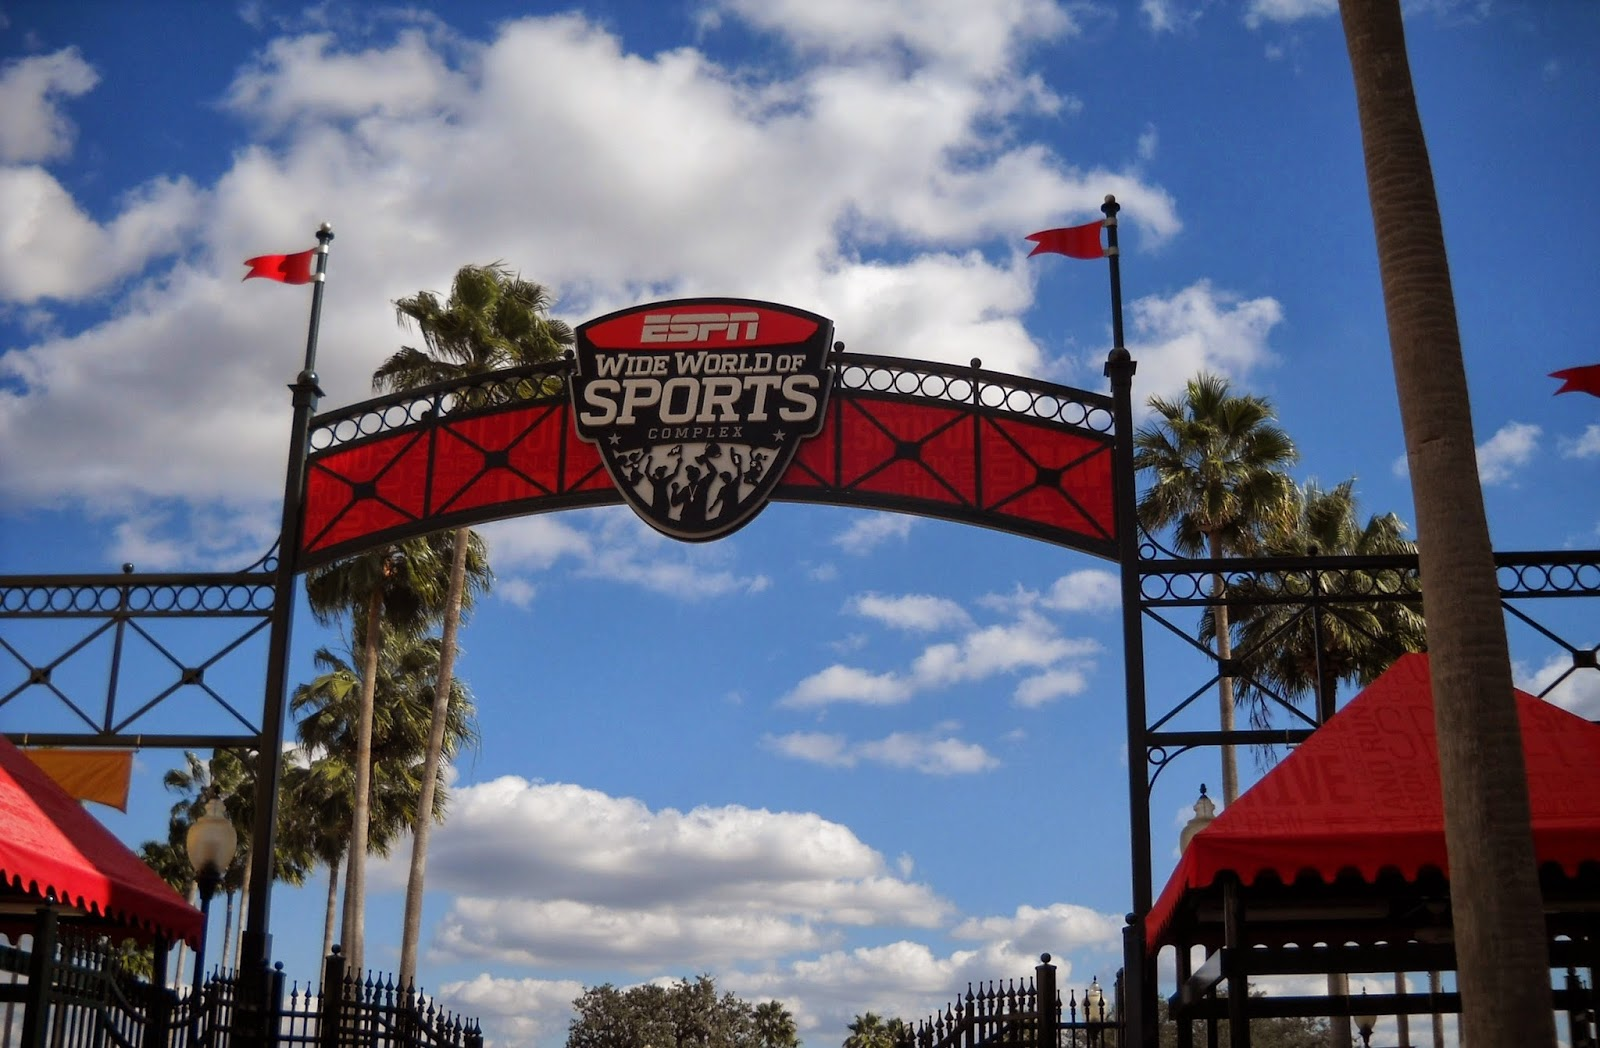 ESPN Wide World of Sports in Orlando, Florida